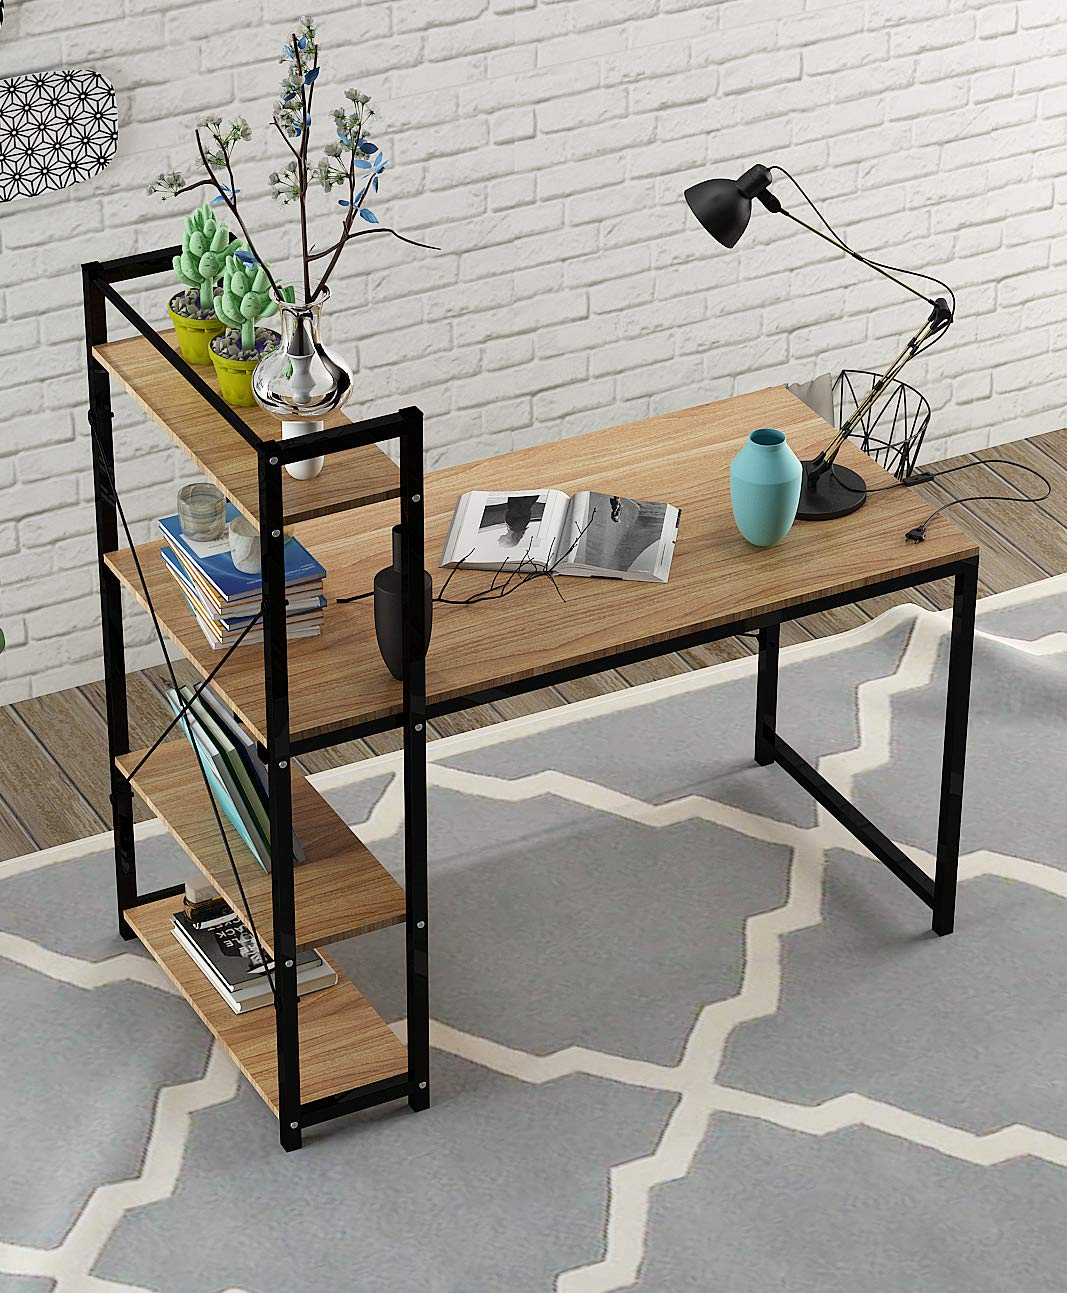 Computer Desk,Modern Style Office Workstation,Home Wood & Metal - ★L-SHAPED CORNER DESIGN - Wrap-around style provides plenty of surface space for home and office work-related or gaming activities. It creates a look that is both attractive and simple. This desk applies to any room and is a great compliment to any home office.The L-shaped design also offered storage space under the corner desk. ★STRONG AND DURABLE - Steel frame construction is sturdy and durable, which provides a strong support.The computer desk is built with a stable and powder-coated steel frame and long-lasting MDF material in a wood . ★HIGH-QUALITY MATERIAL - The home office desks is made of P2 eco-friendly class particle board and thicker steel. The thicker steel desk legs will decrease shake, which makes the desk more stable and secure. The surface of this desk is special, it is lightly textured so it can act as a smooth mouse pad perfectly. At the same time it prevents things for sliding around or falling off your desk easily. - writing-desks, living-room-furniture, living-room - 71Q ecE6 DL -